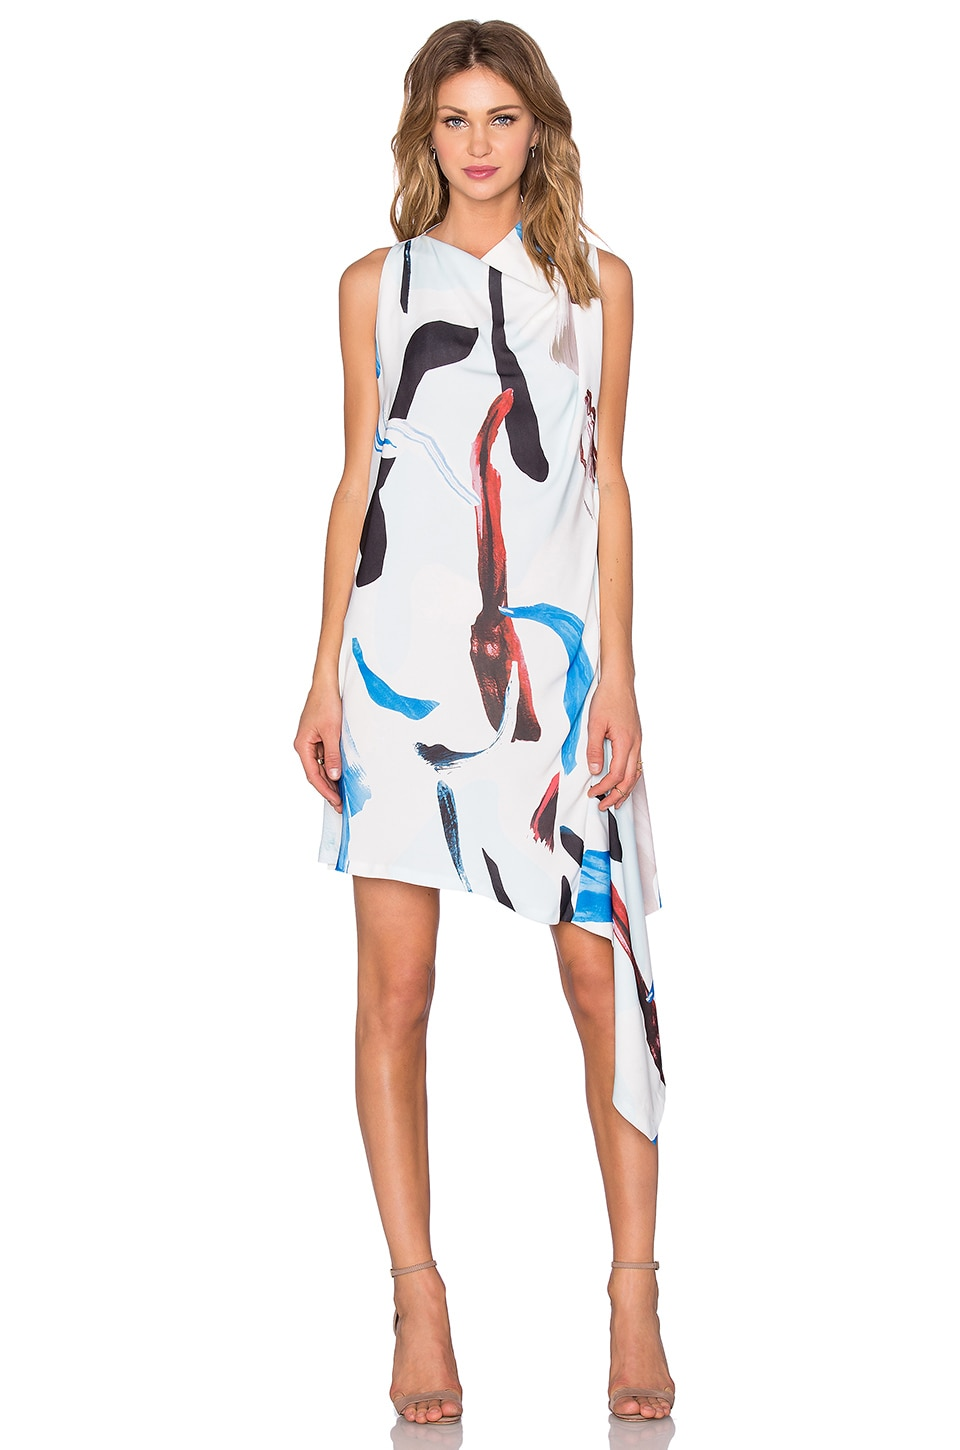 Acler Carling Dress in Pigment Print